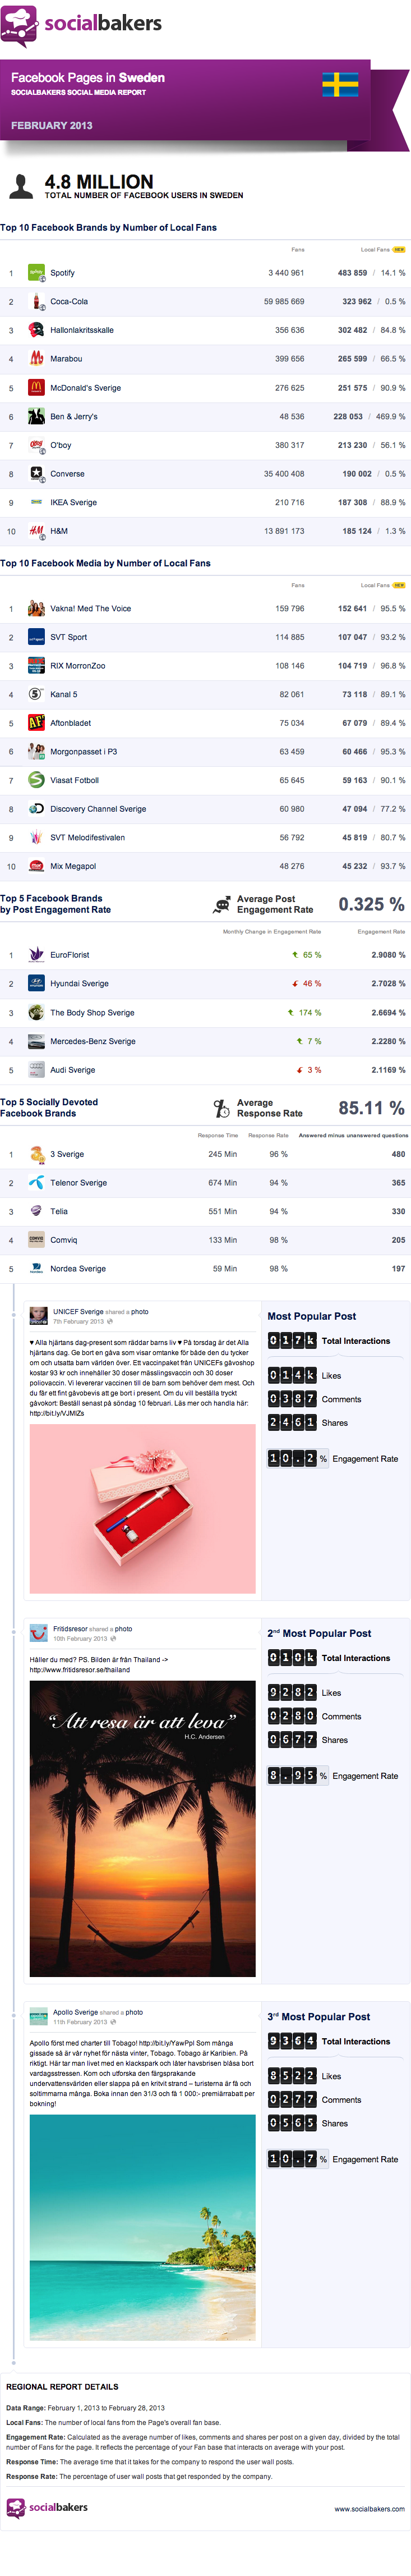 top facebook pages sweden feb 2013